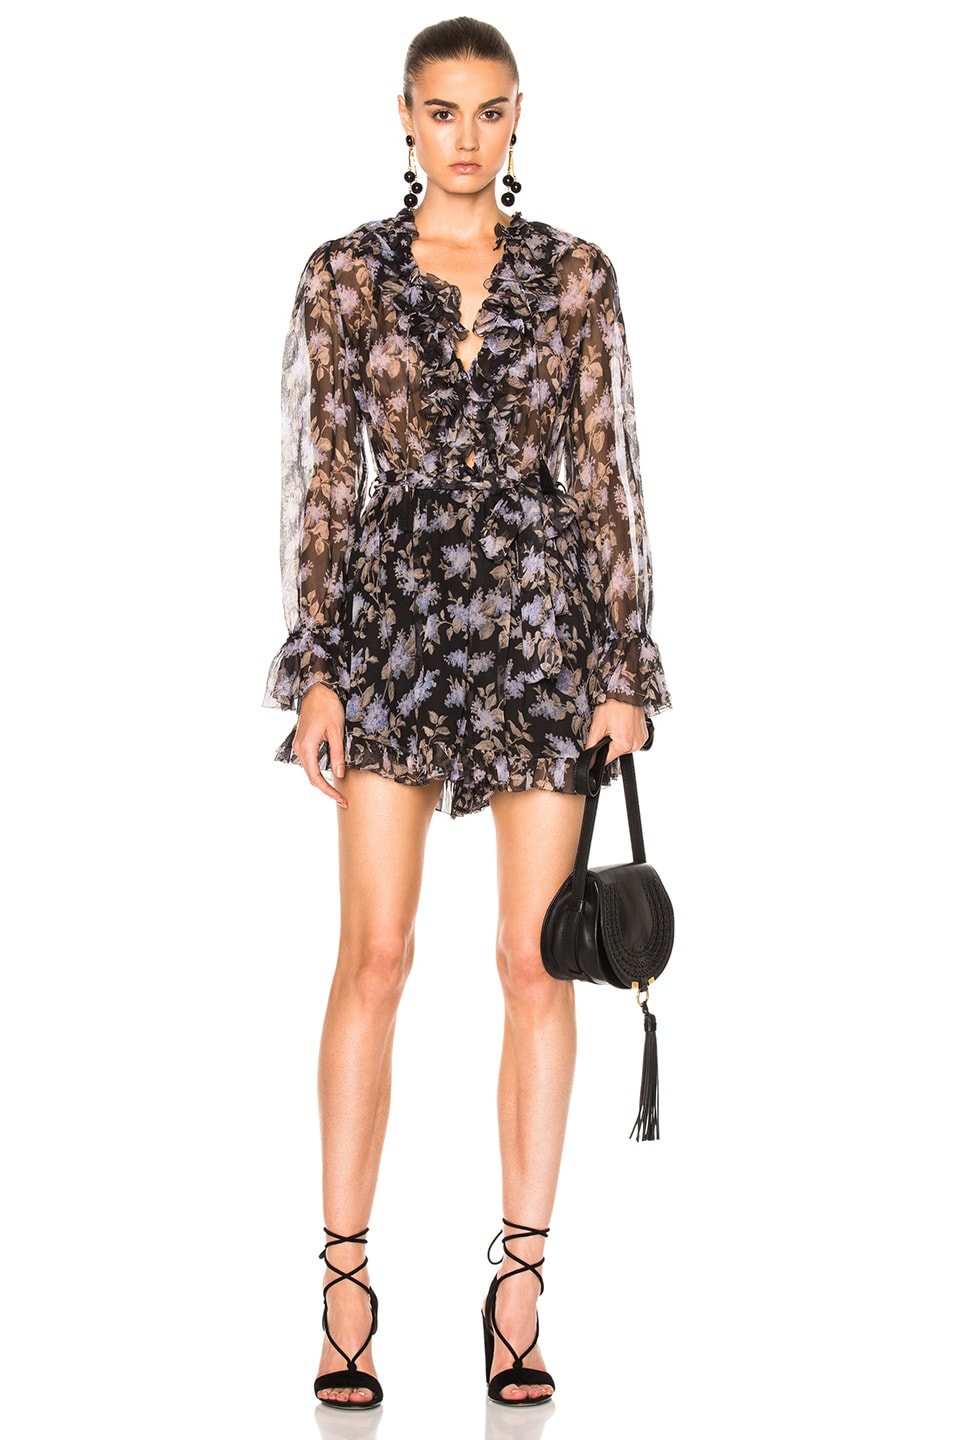 80e781416e9 Image 1 of Zimmermann Stranded Ruffle Playsuit in Black Lavender Floral